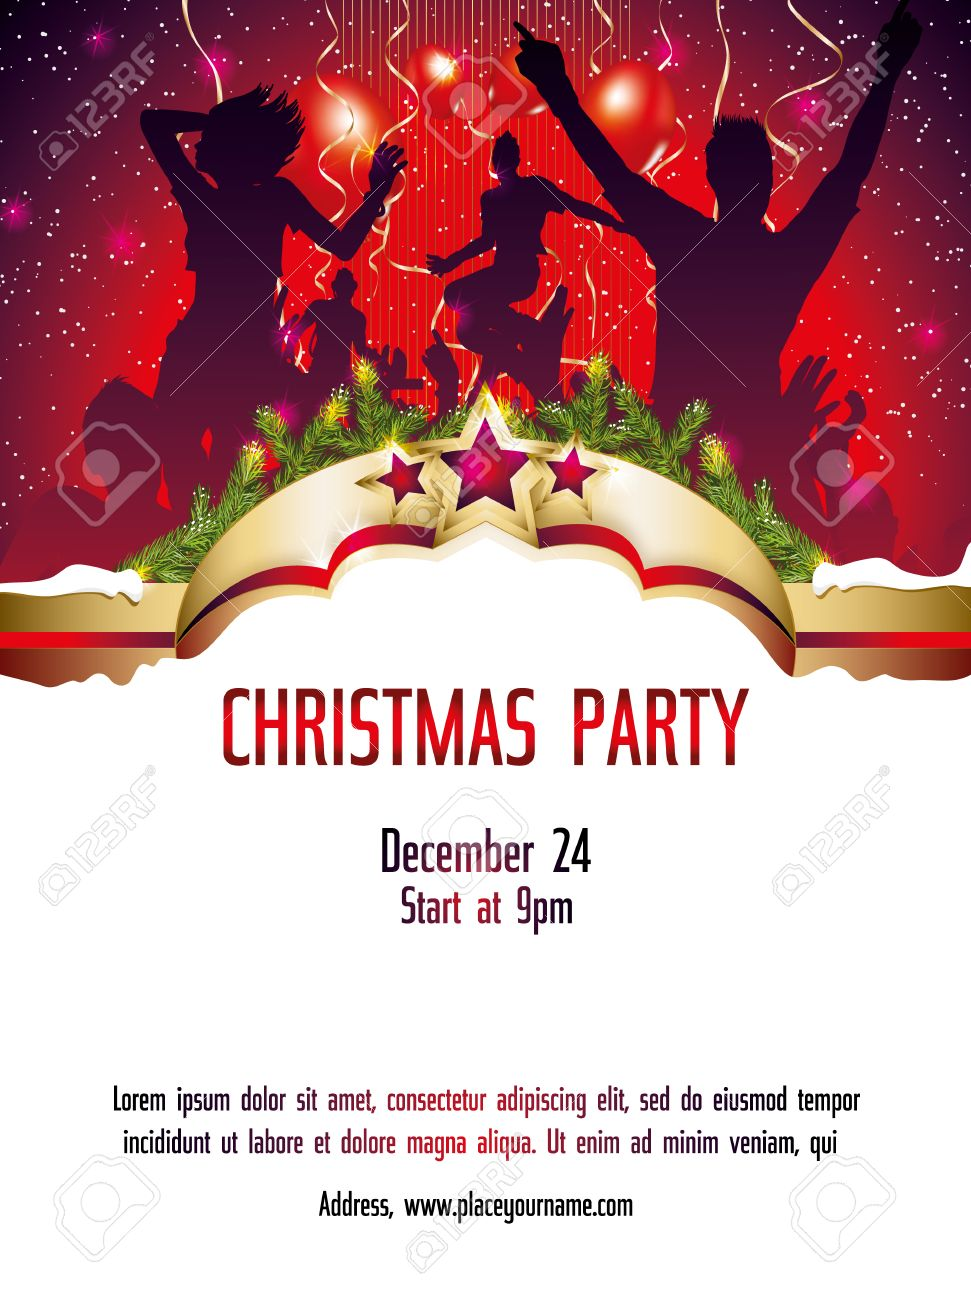 Christmas Party Invitation Template Illustration Royalty Free ...